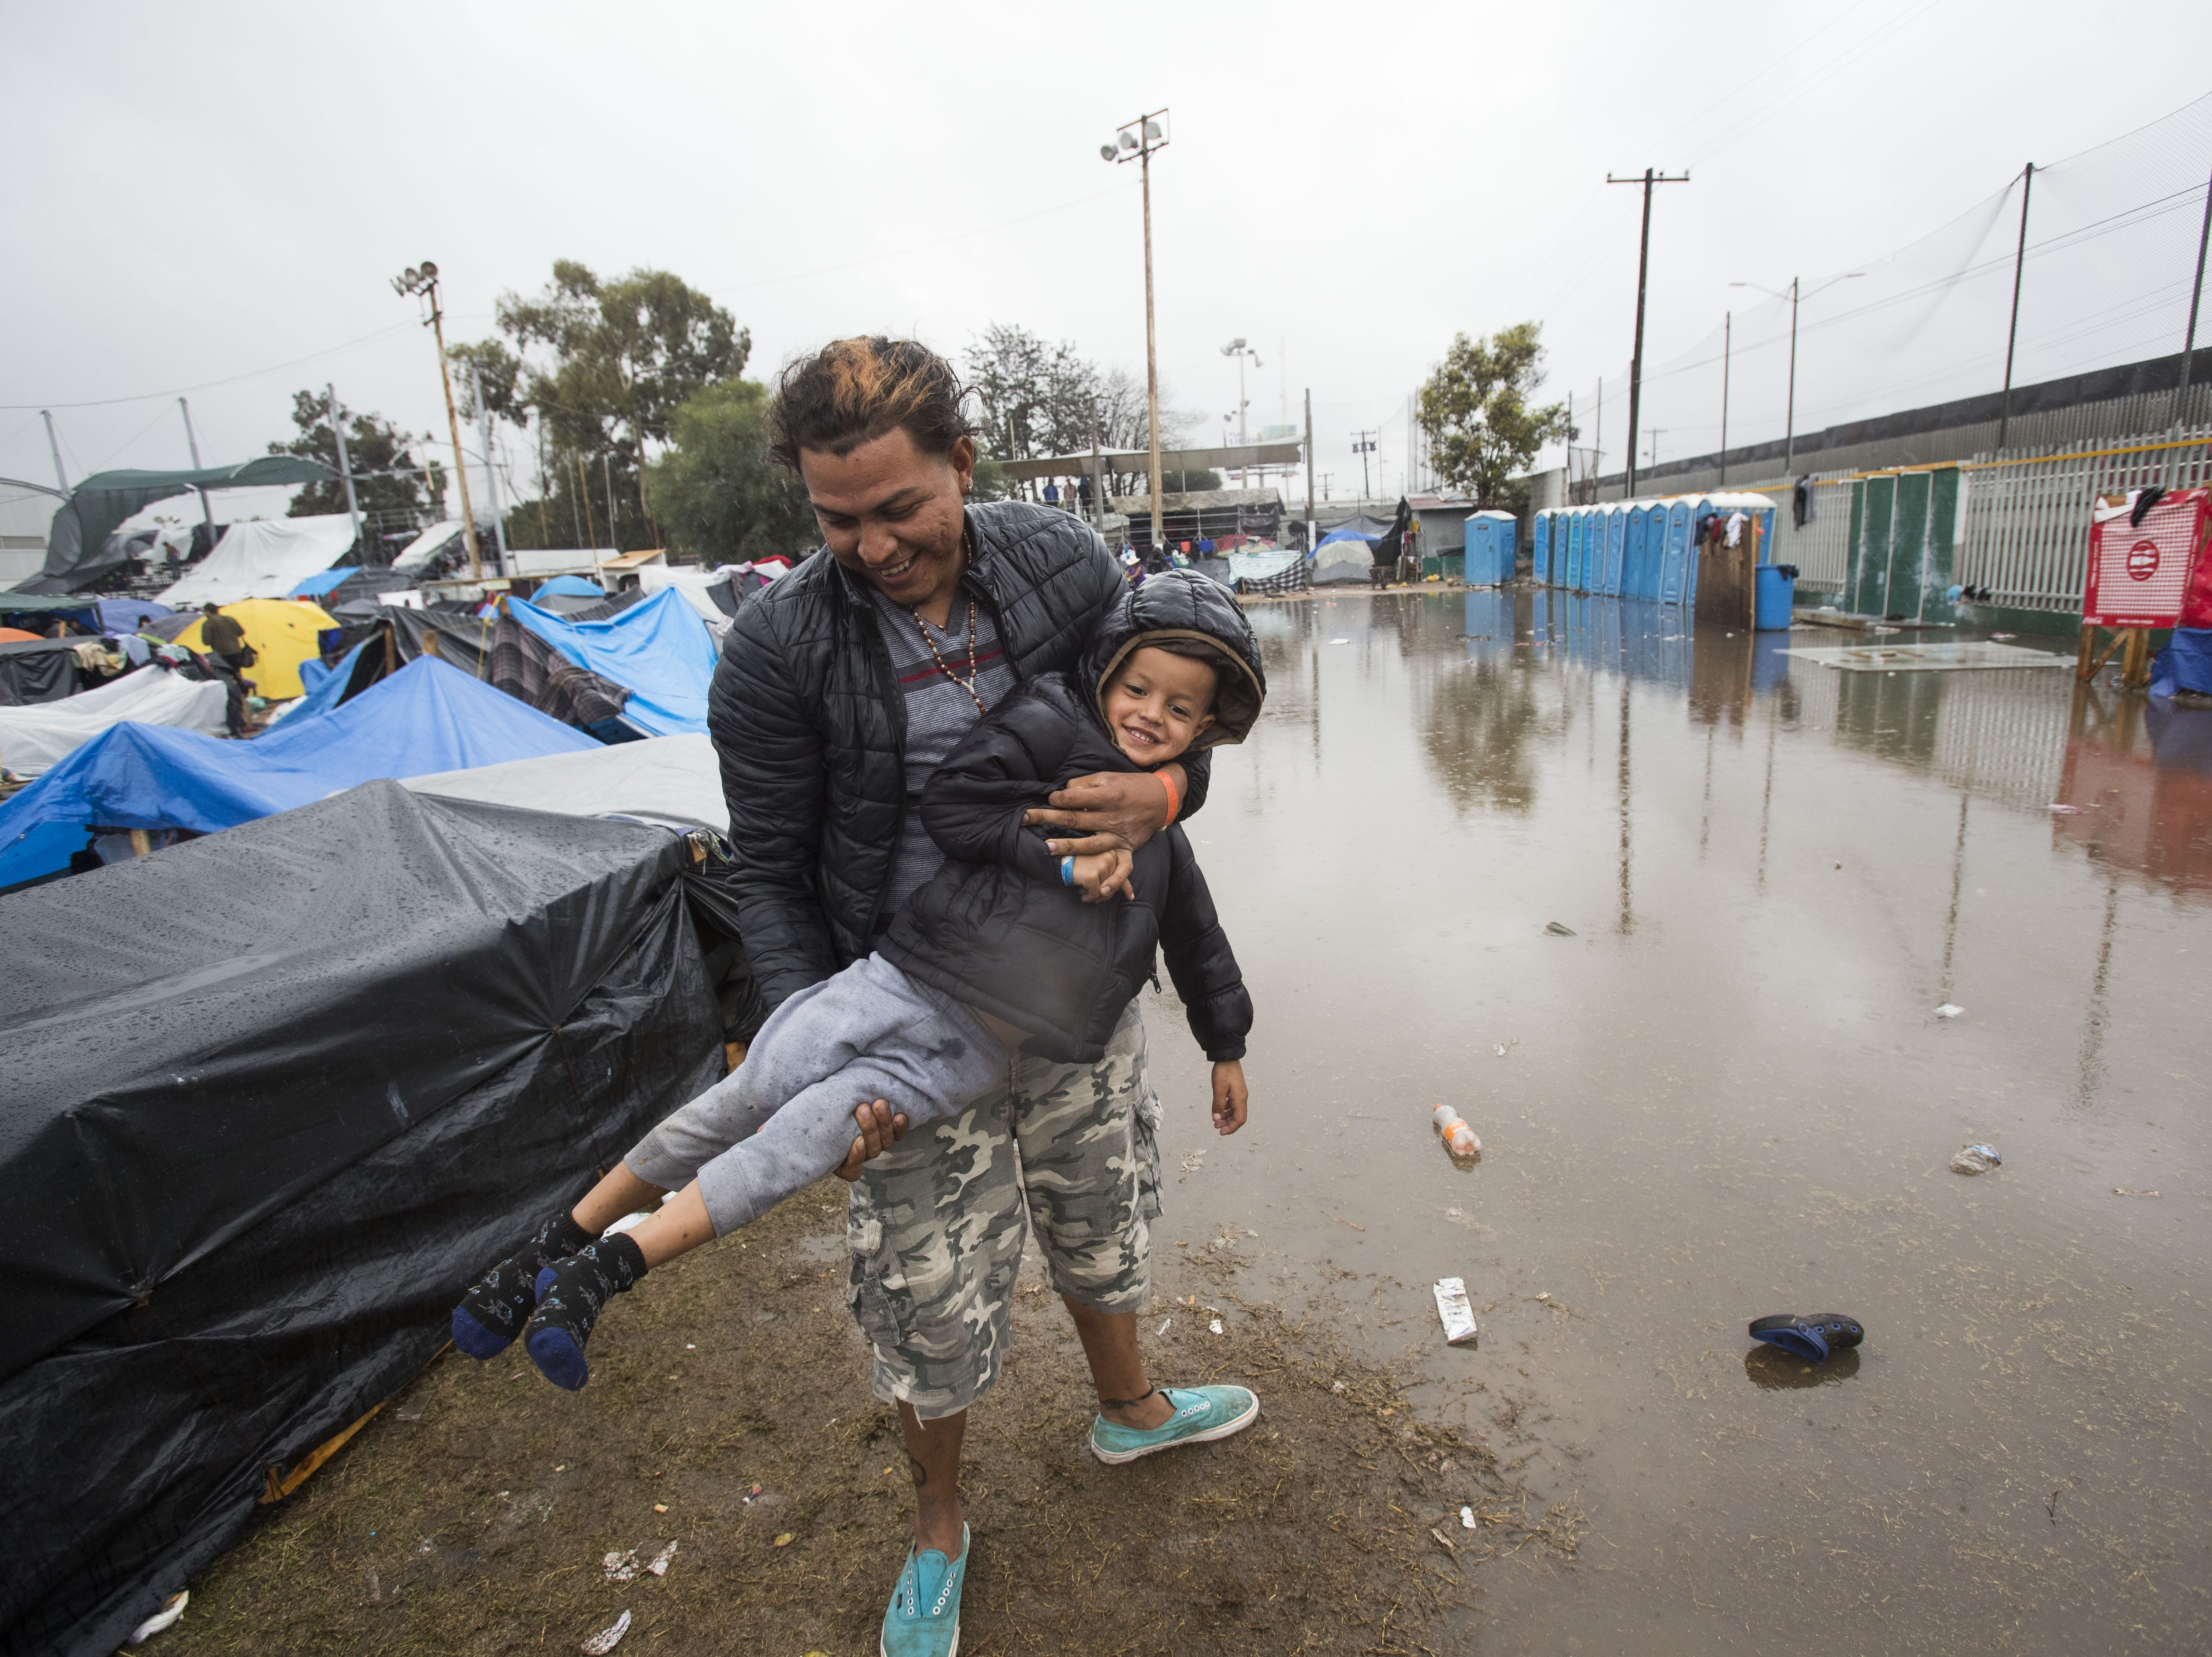 A father and his son enjoy a light moment as dirty water ponds near their tent at the shelter.